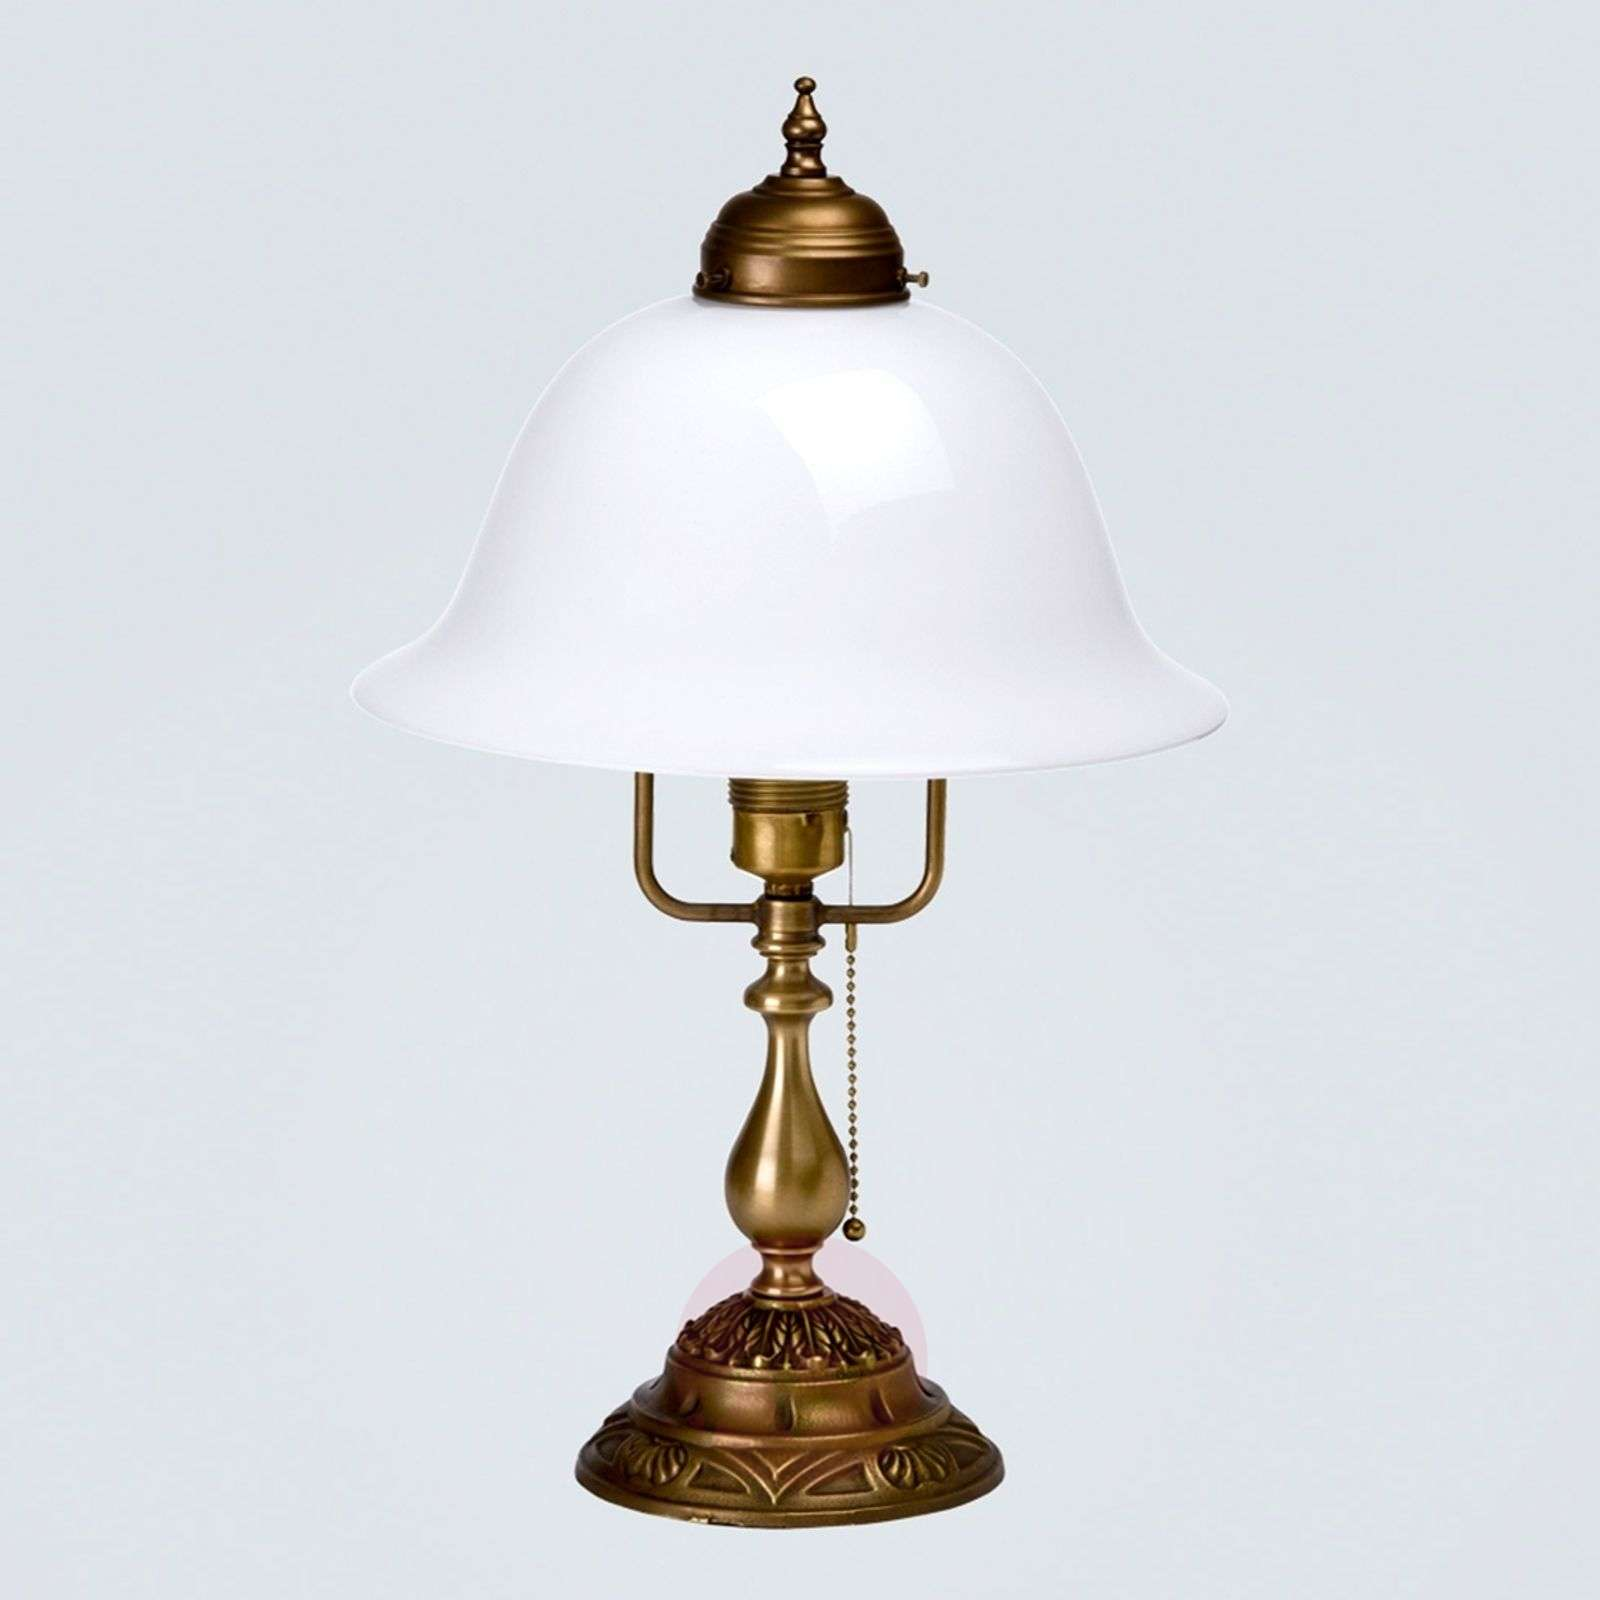 Carolin embellished table lamp made of brass-1542050-01